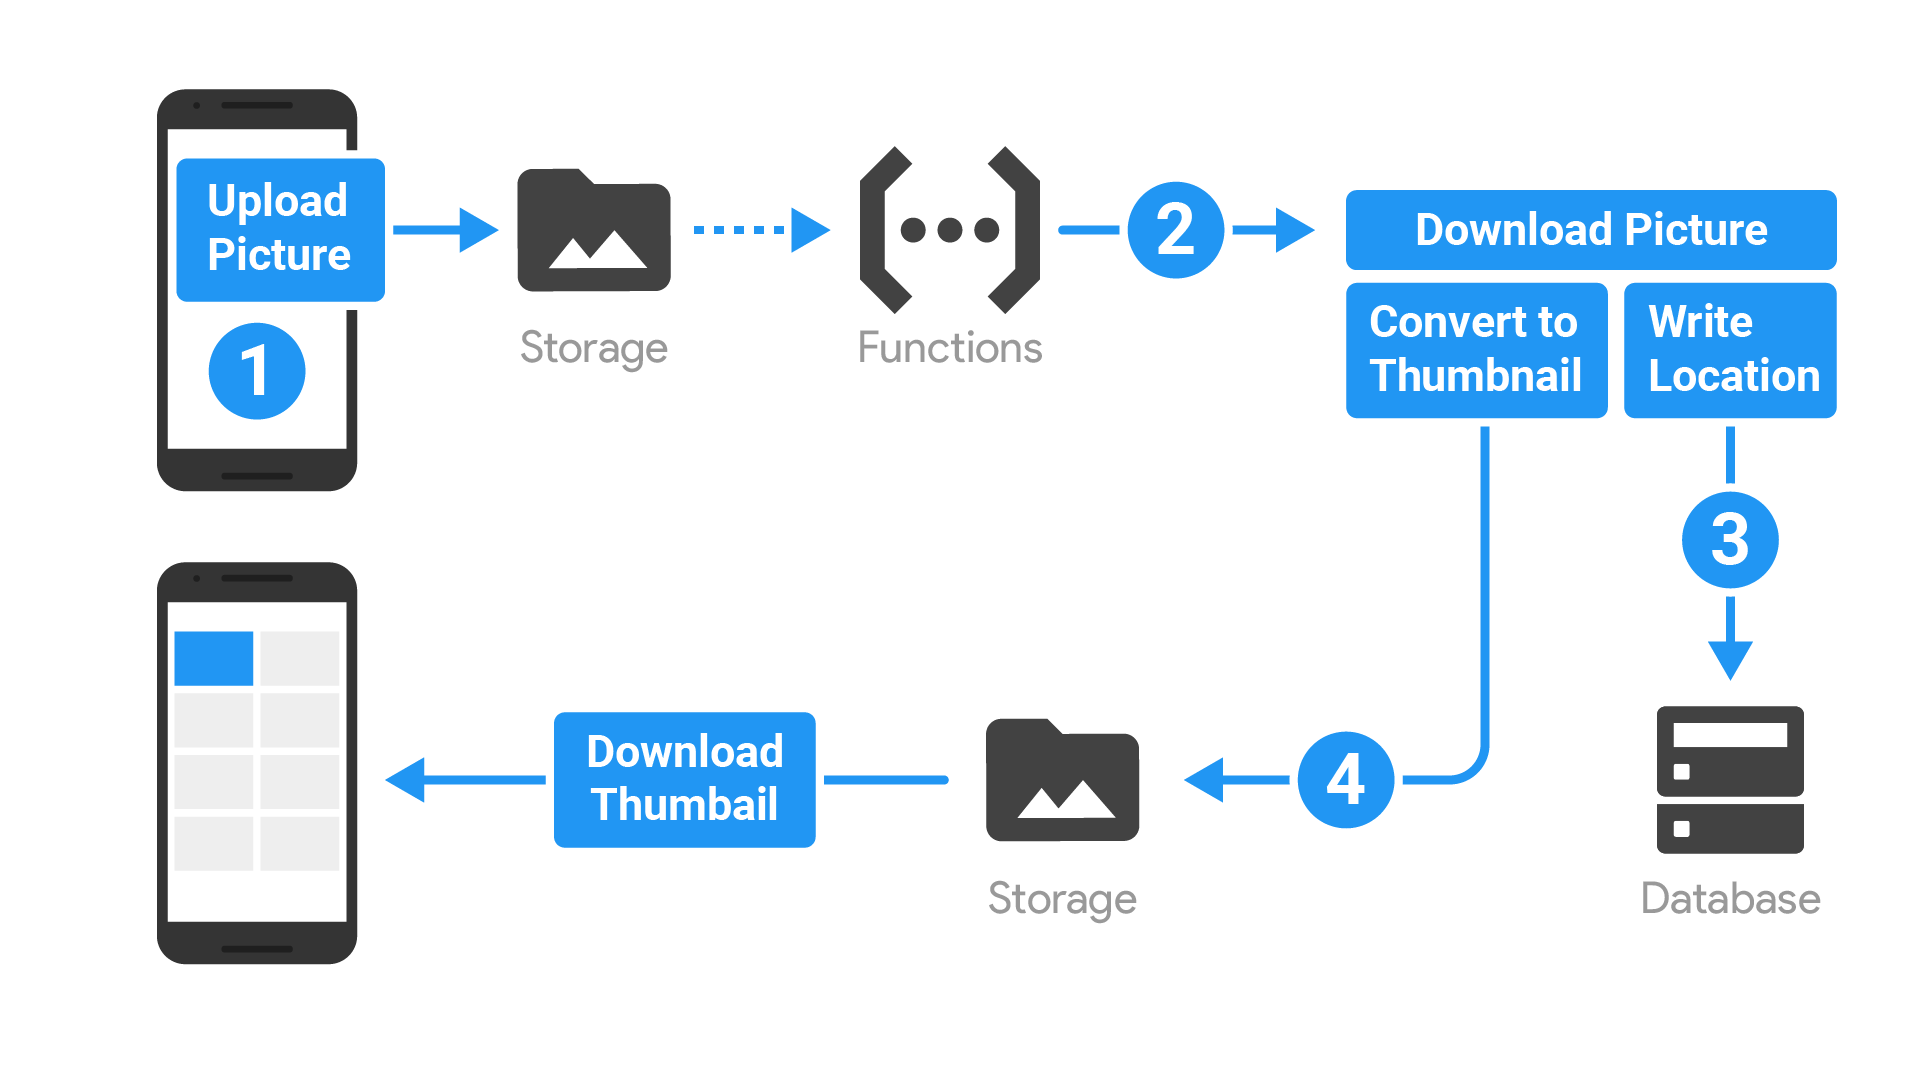 Execute intensive tasks in the cloud instead of in your app